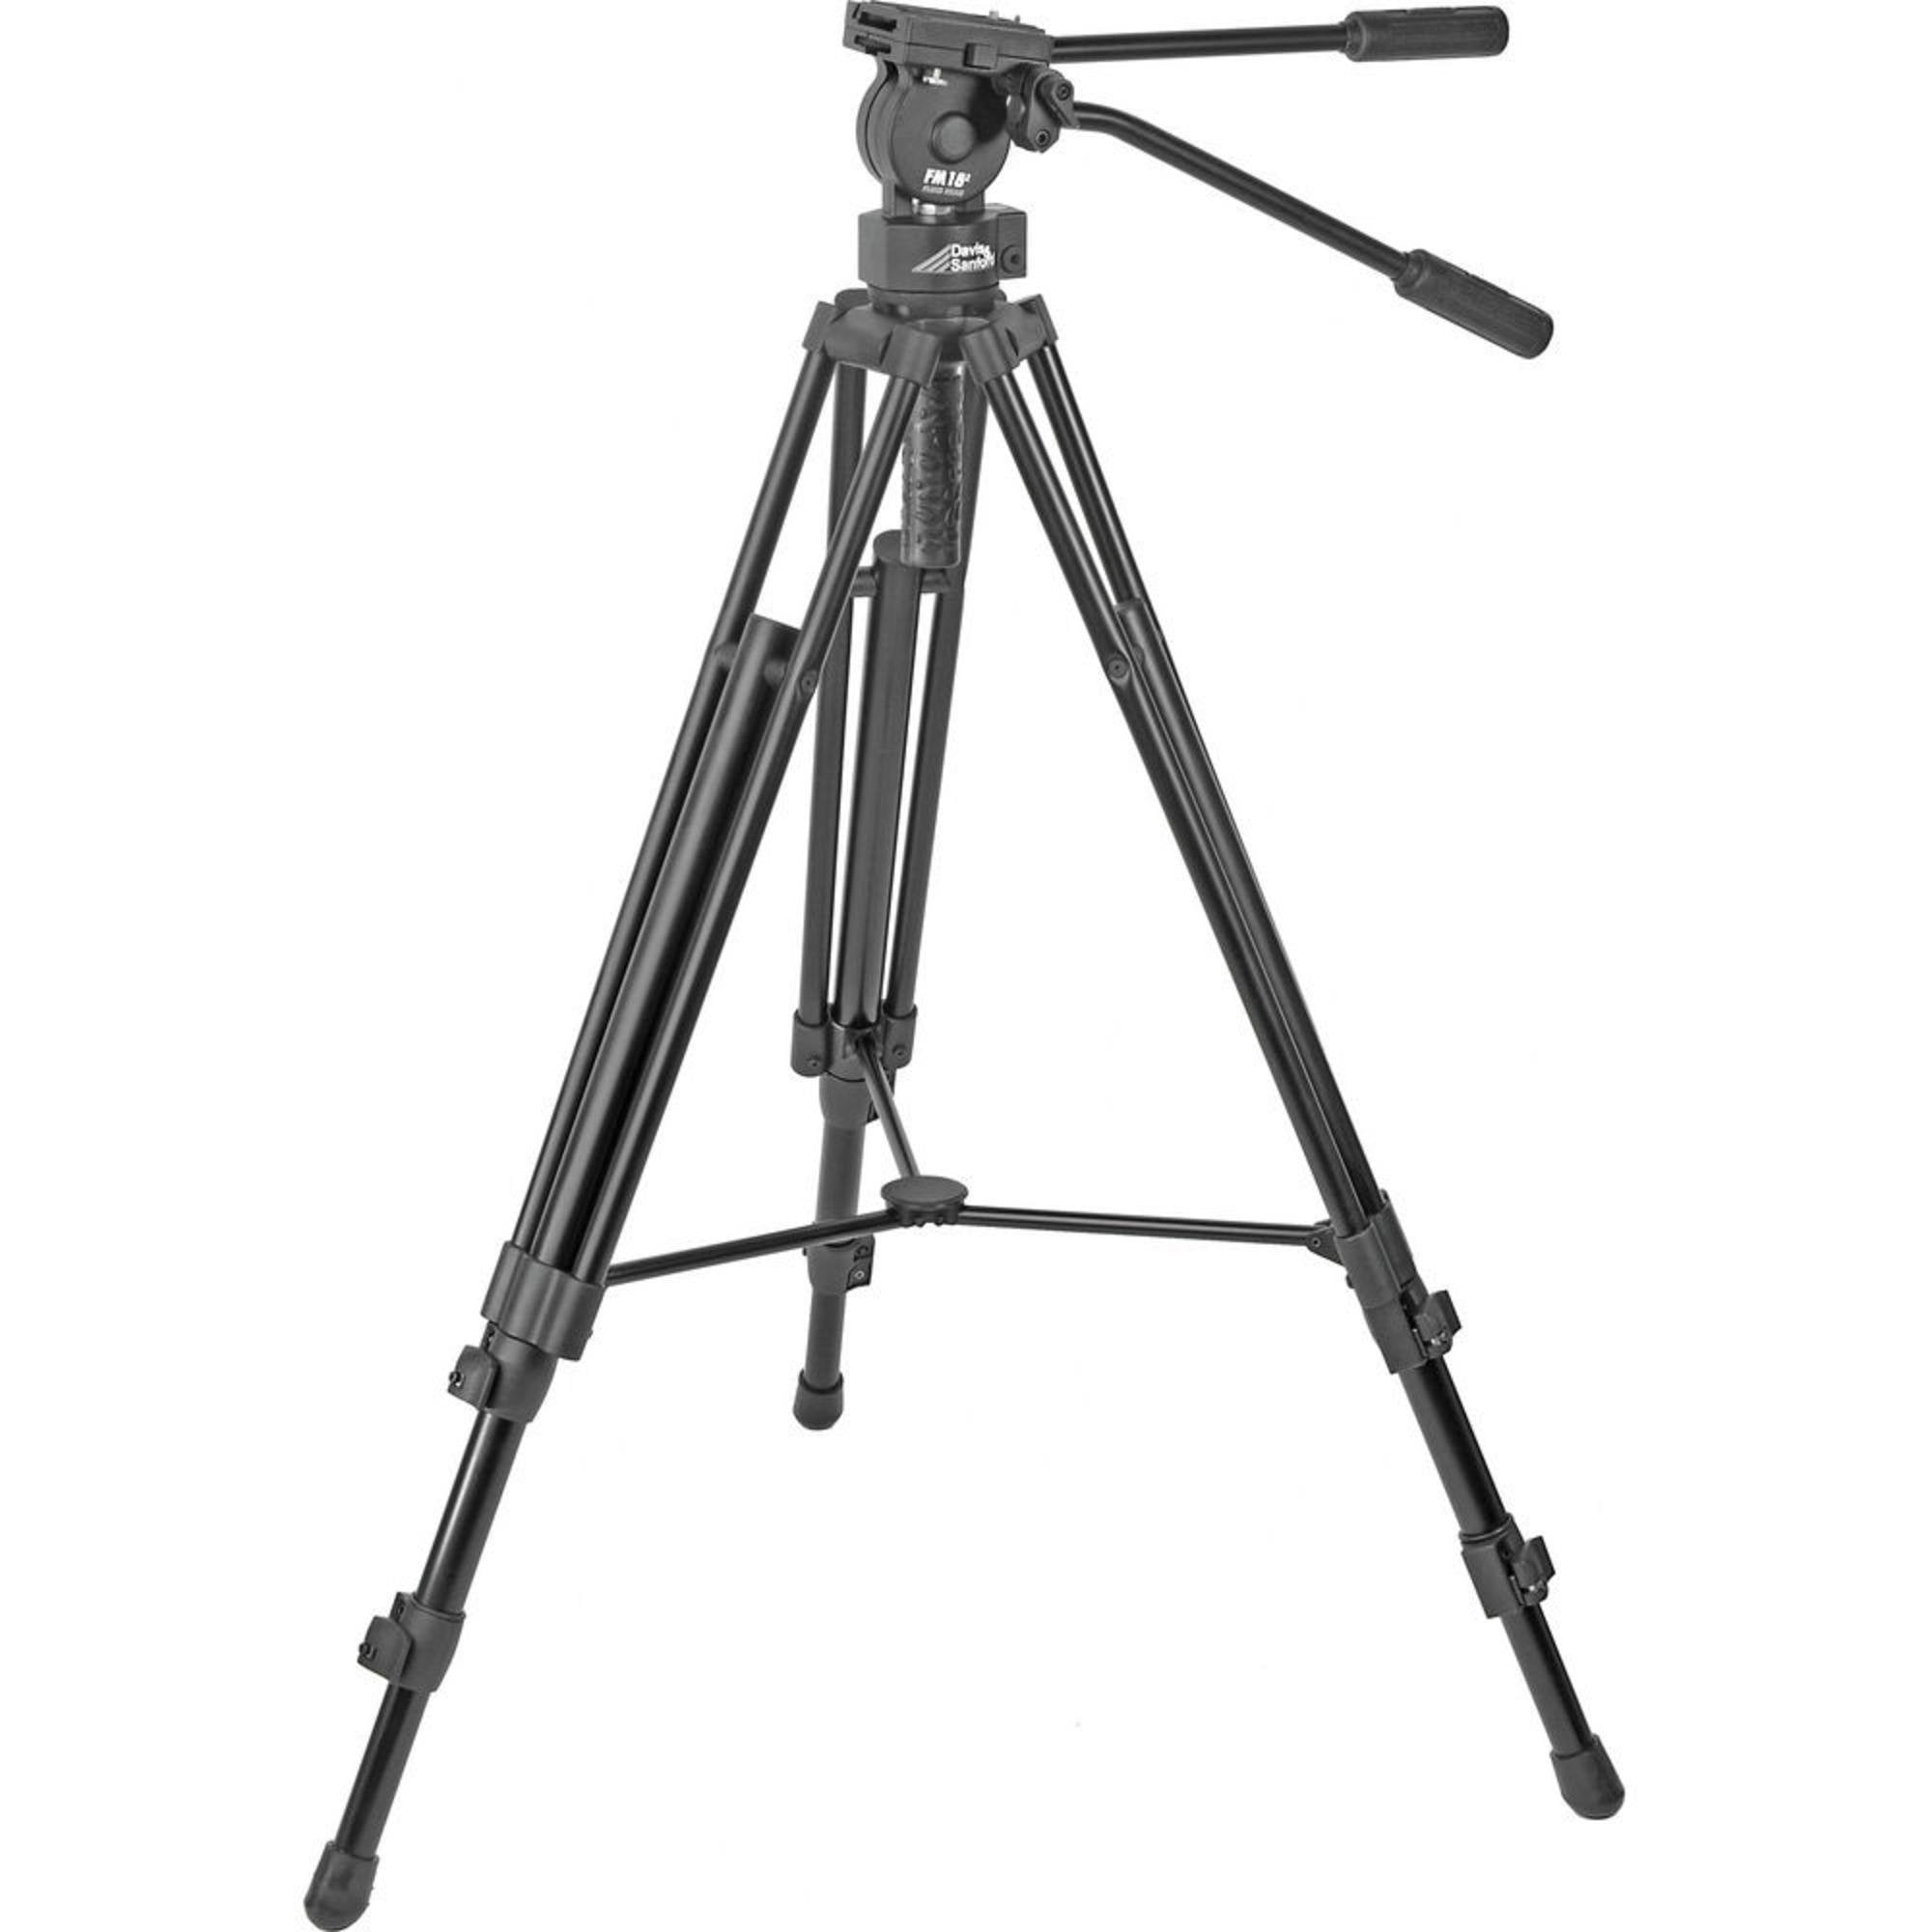 Davis & Sanford Provista 7518 Tripod with FM18 Head